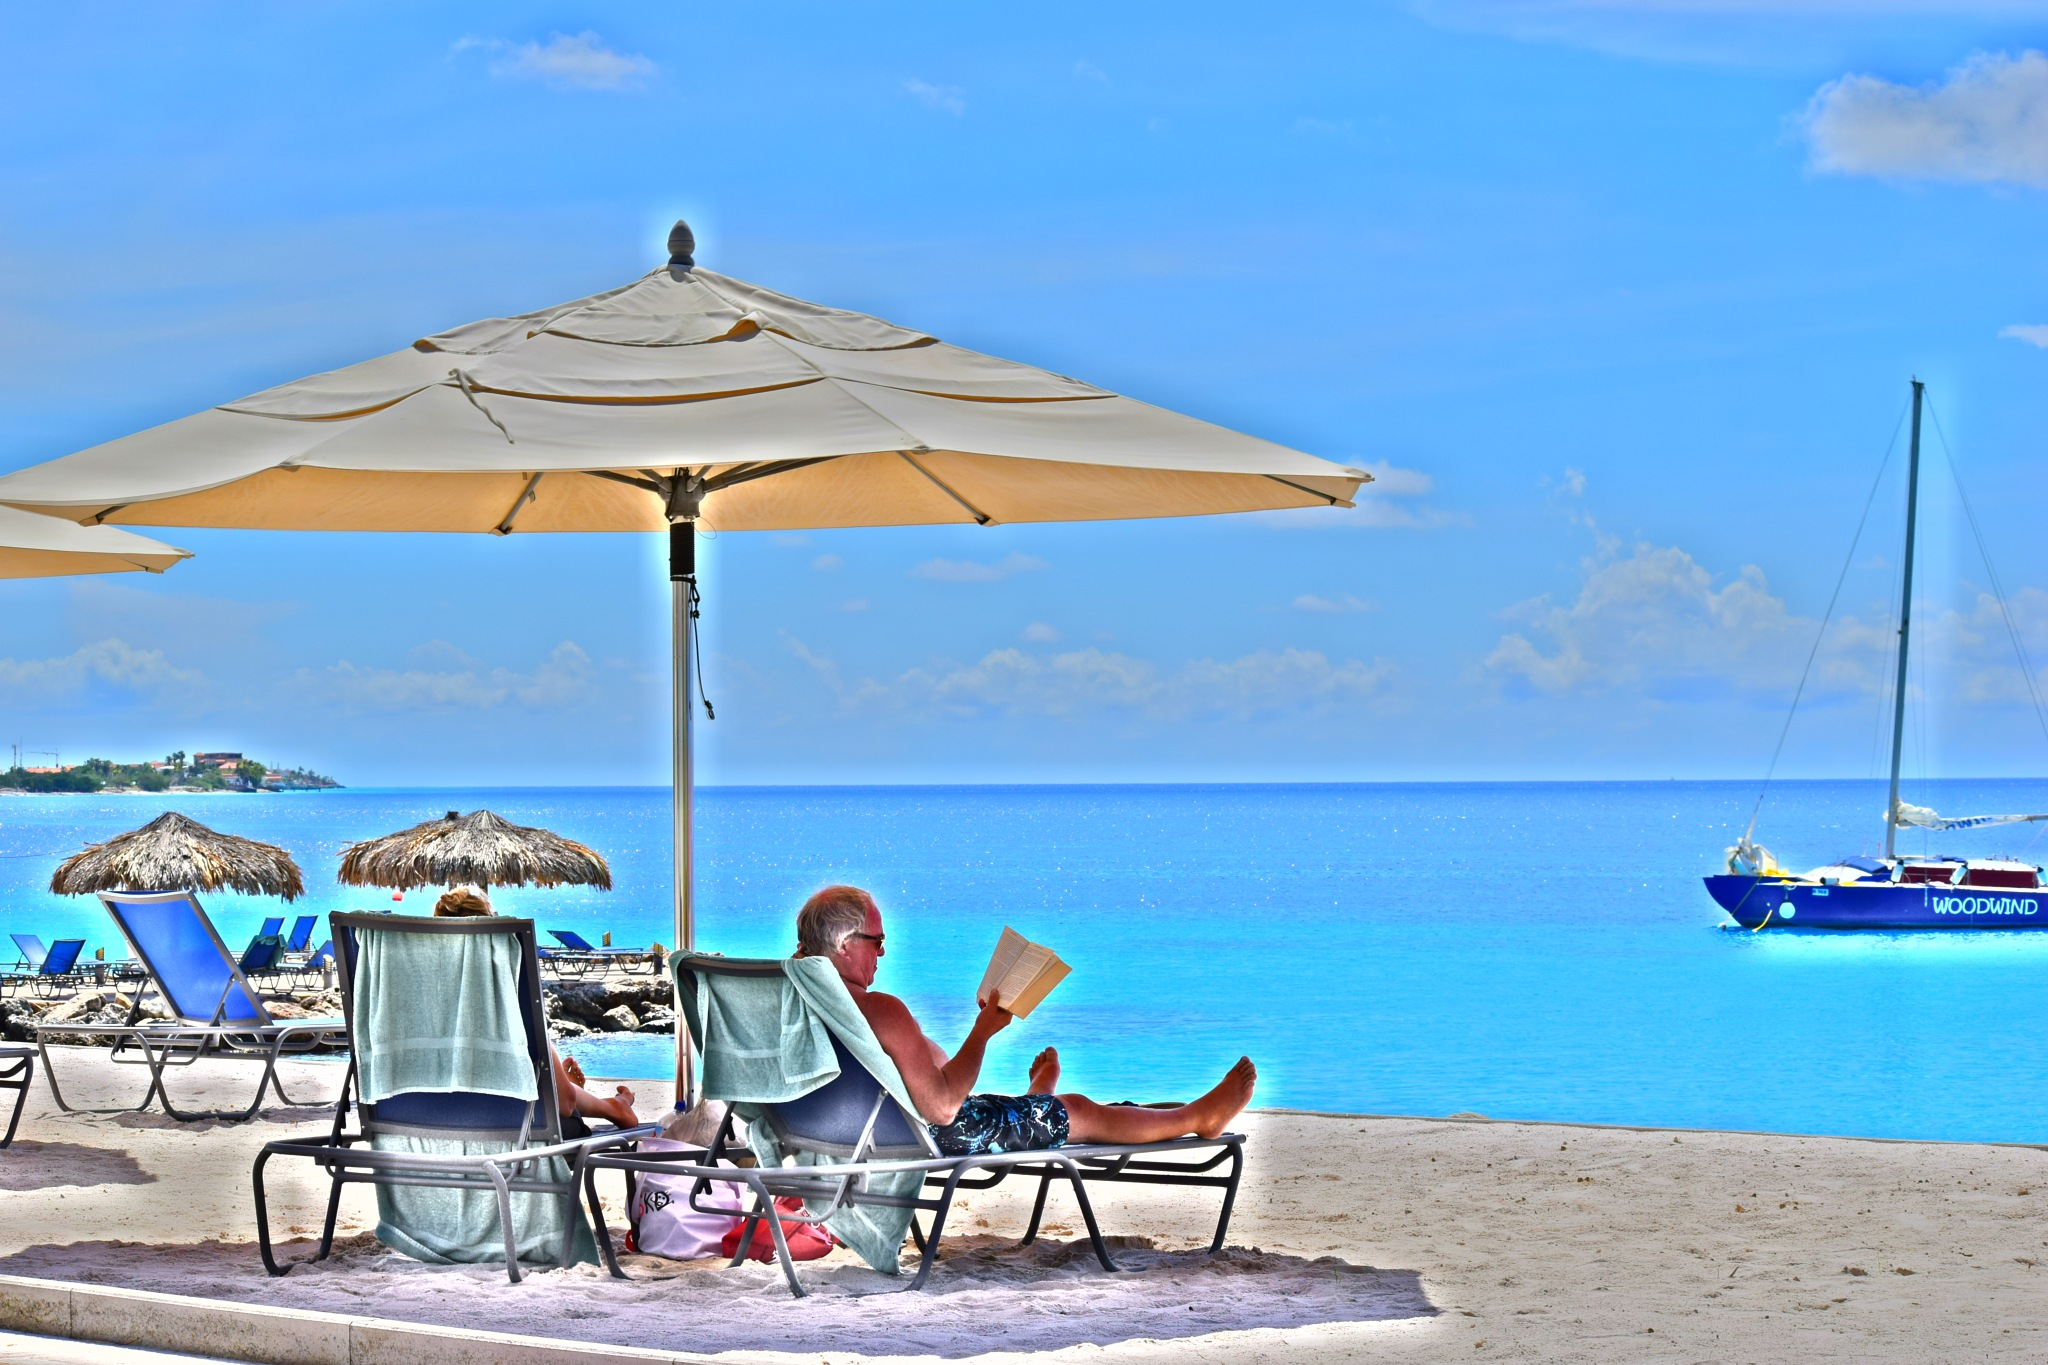 Relaxing in the Sun (Bonaire) by KMcCord